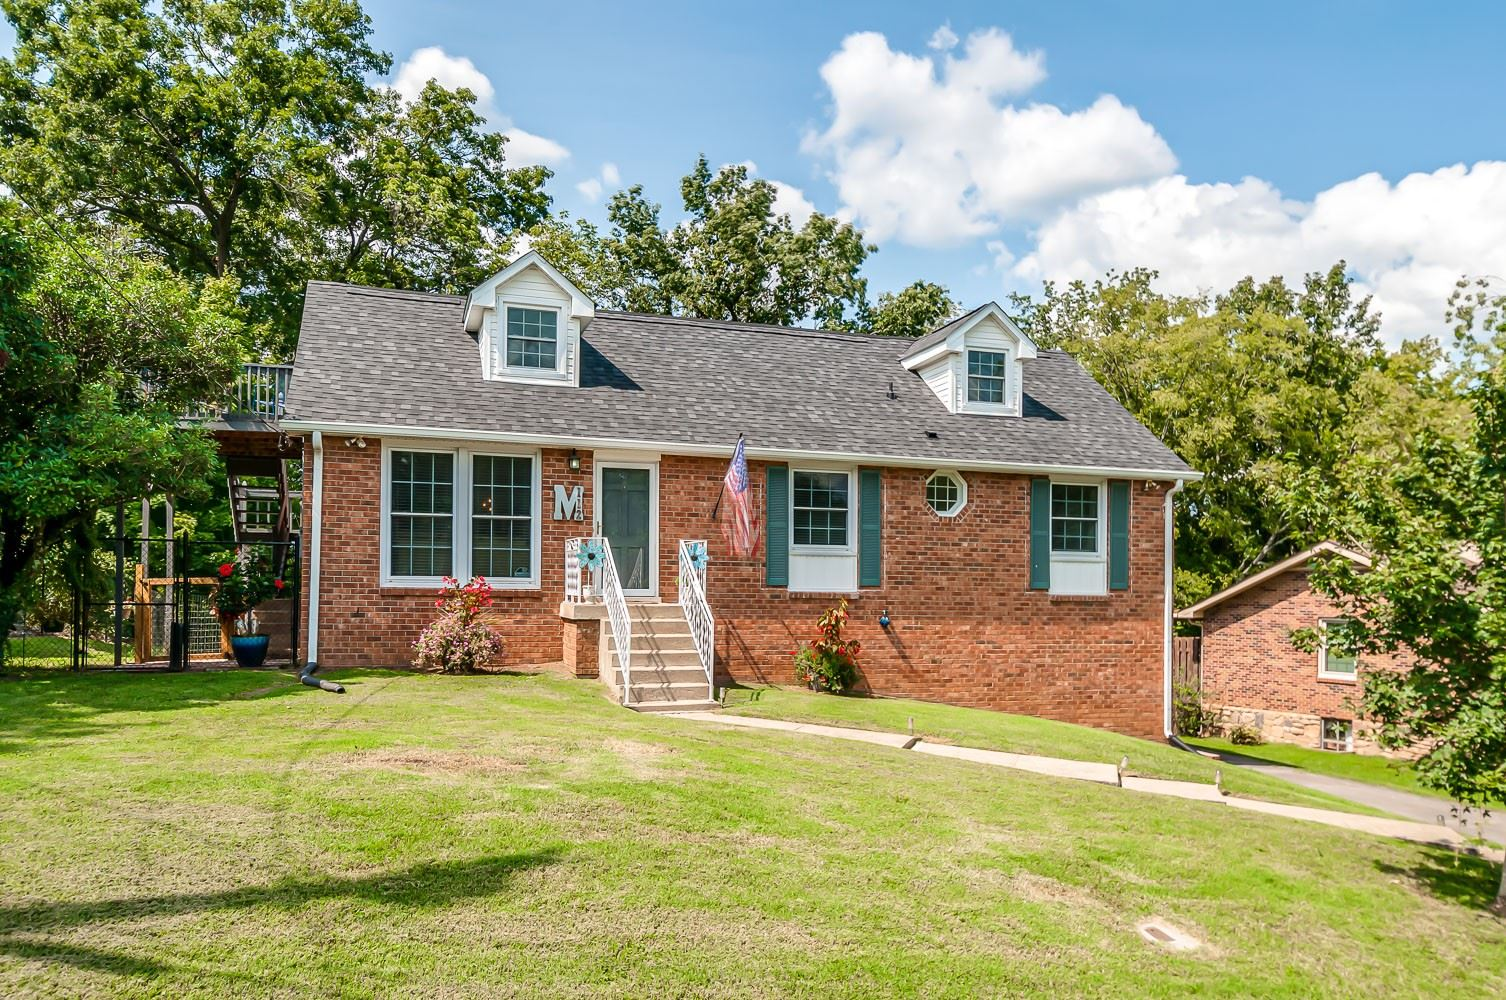 Photo of 112 Jacksonian Dr, Hermitage, TN 37076 (MLS # 2189610)